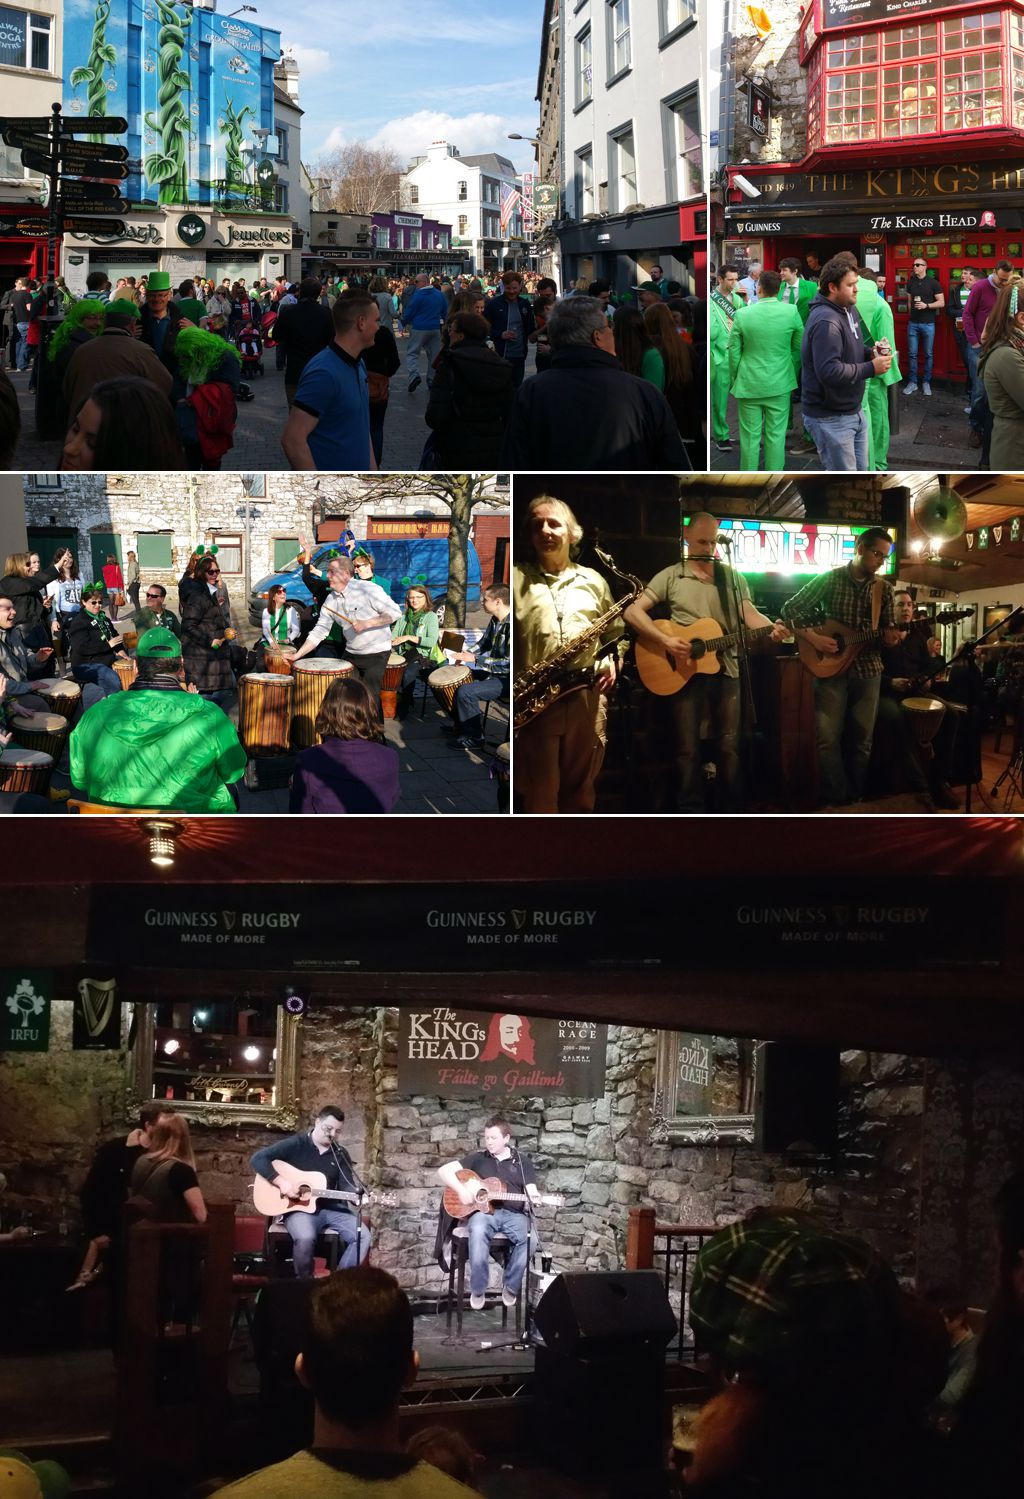 St Patricks Day in Galway, Ireland